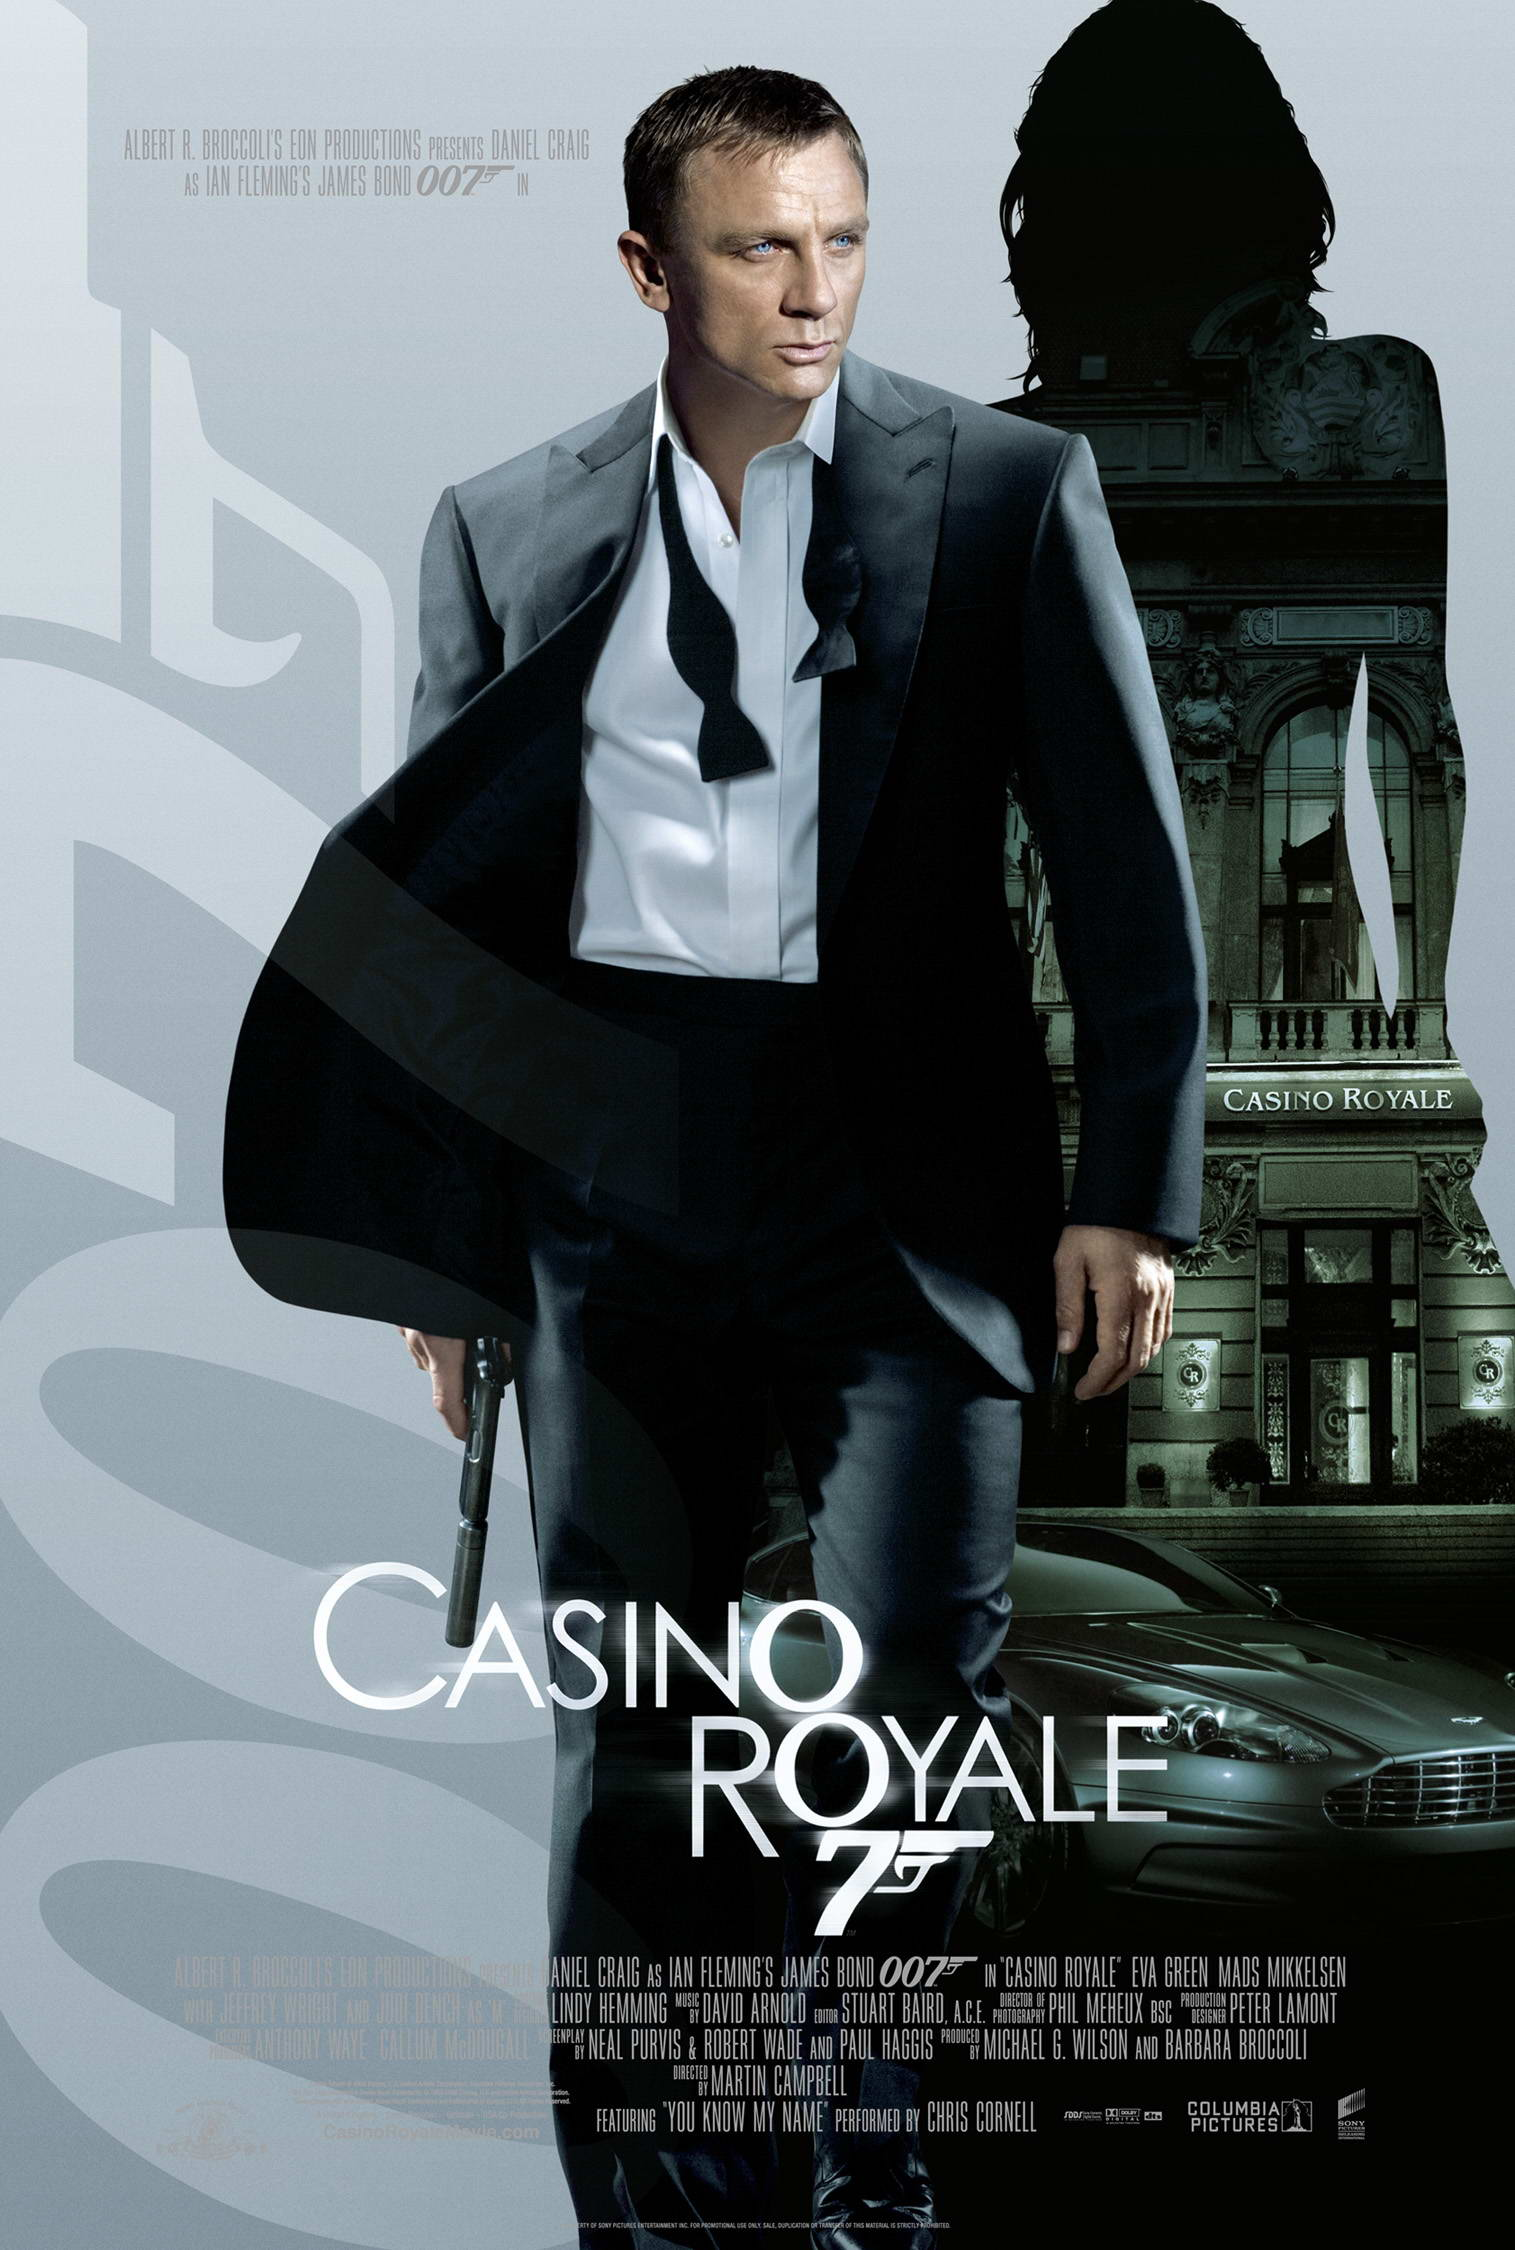 casino royale movie online free book of ra.de